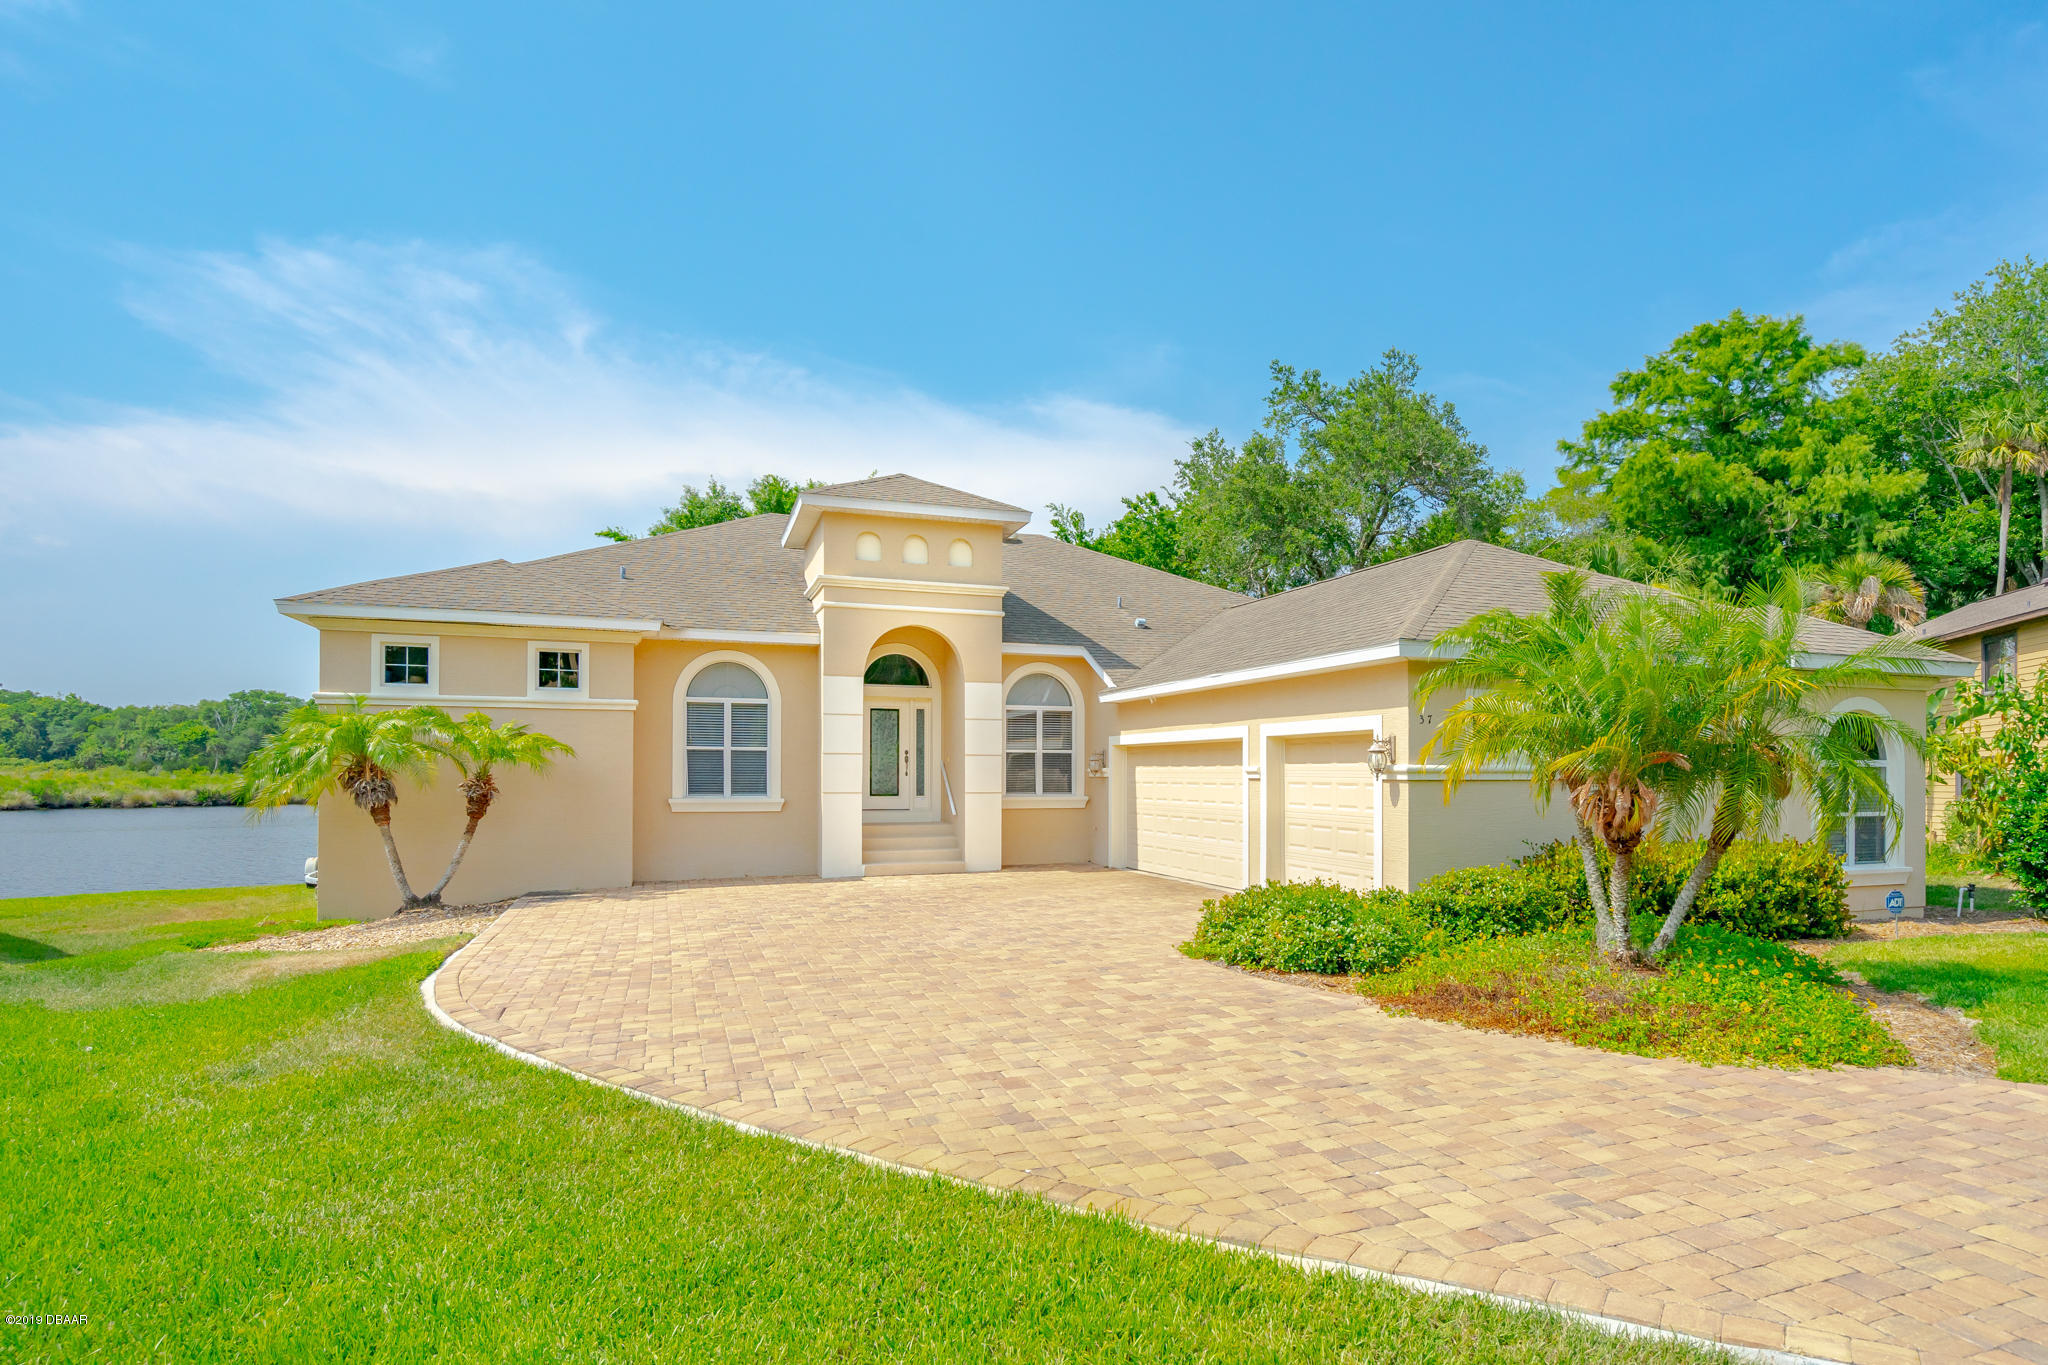 Photo of 37 Pebble Beach Drive, Ormond Beach, FL 32174